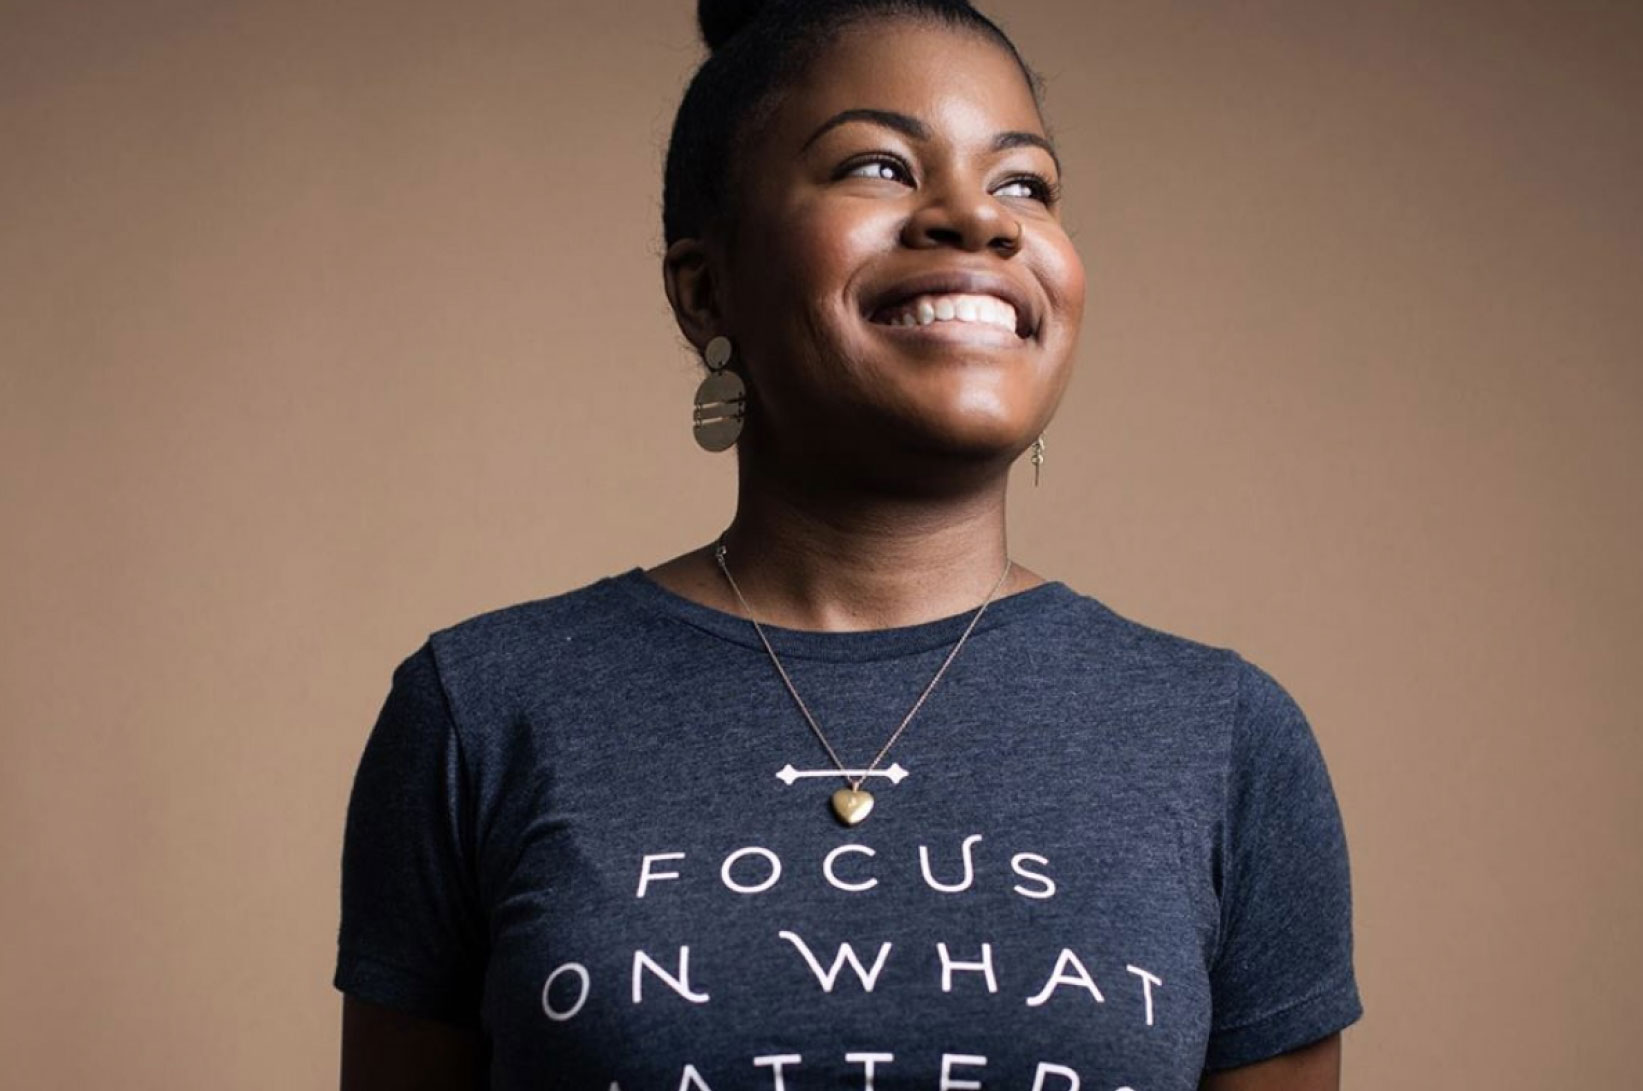 Photographer, Chanel French smiling with a Focus On What Matters Most shirt